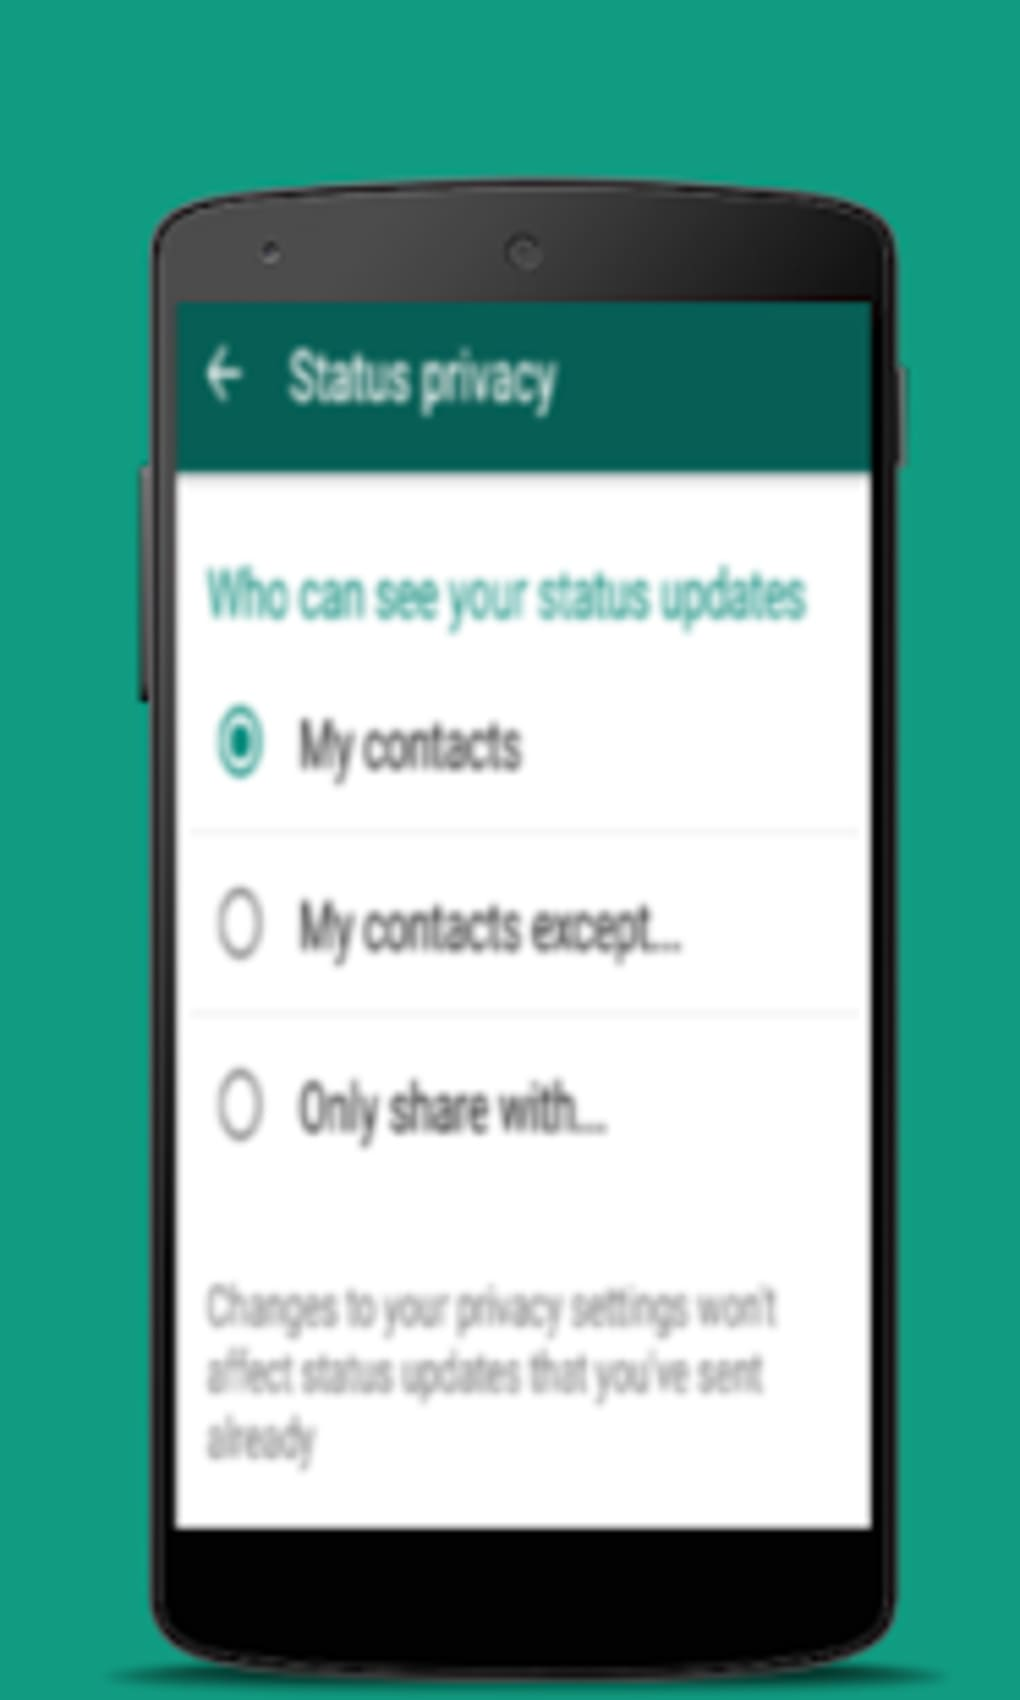 new whatsapp status guide for android ダウンロード